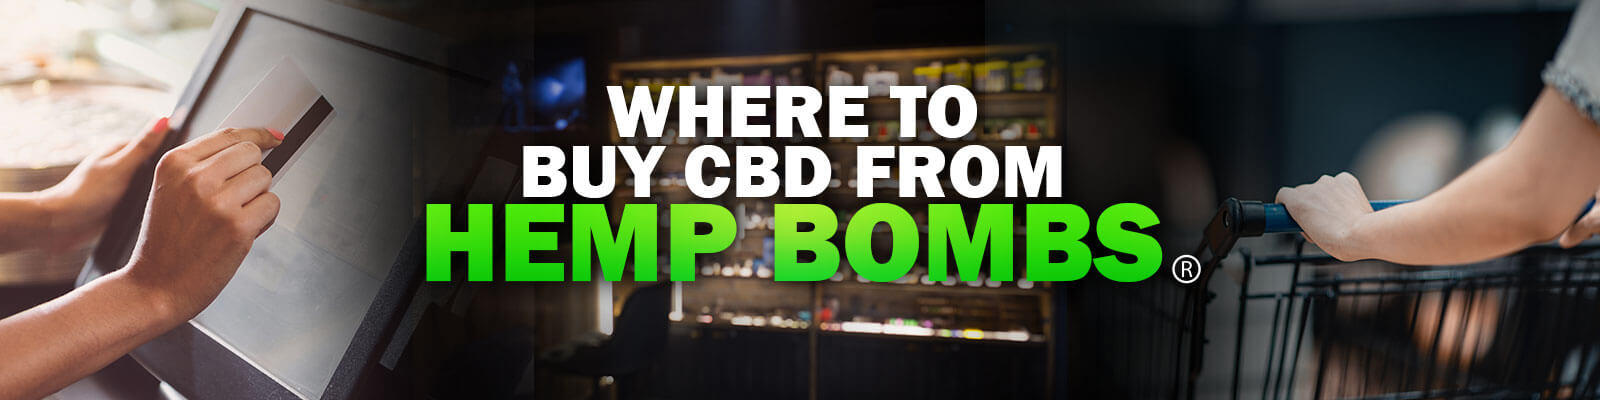 Where to Buy CBD Online from Hemp Bombs